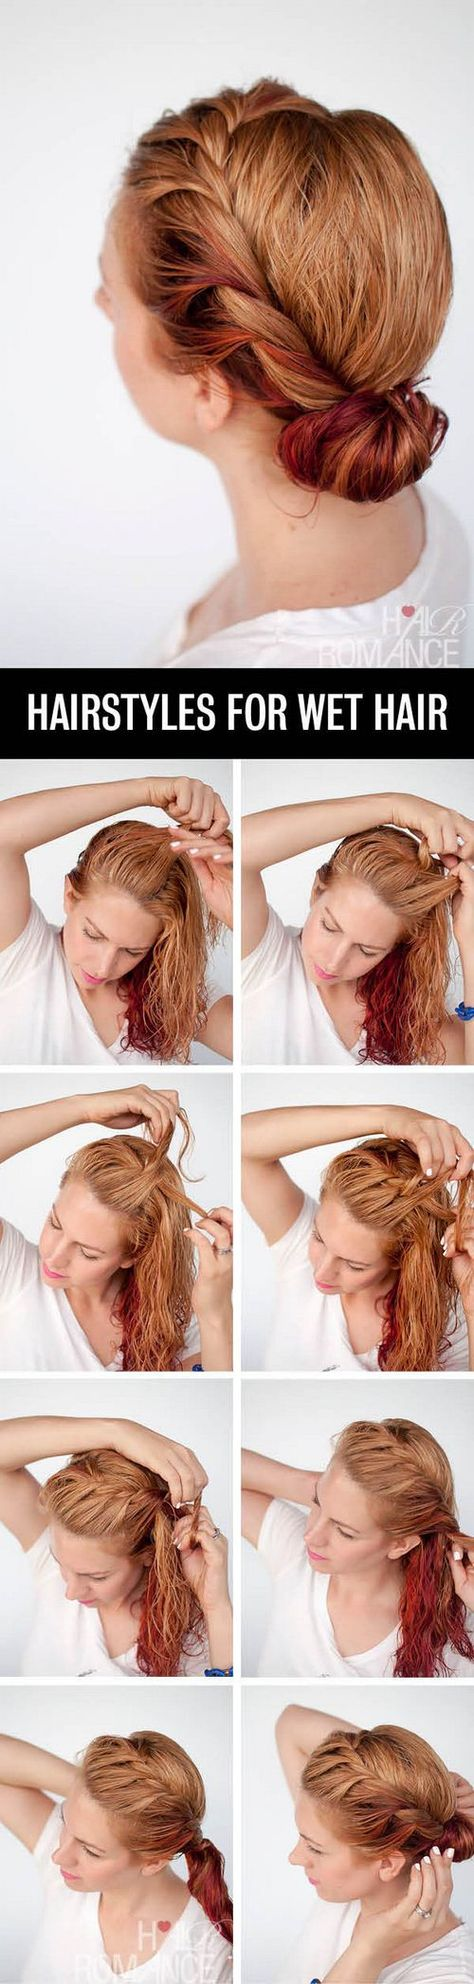 hairstyles for wet hair: 3 simple braid tutorials you can wear in